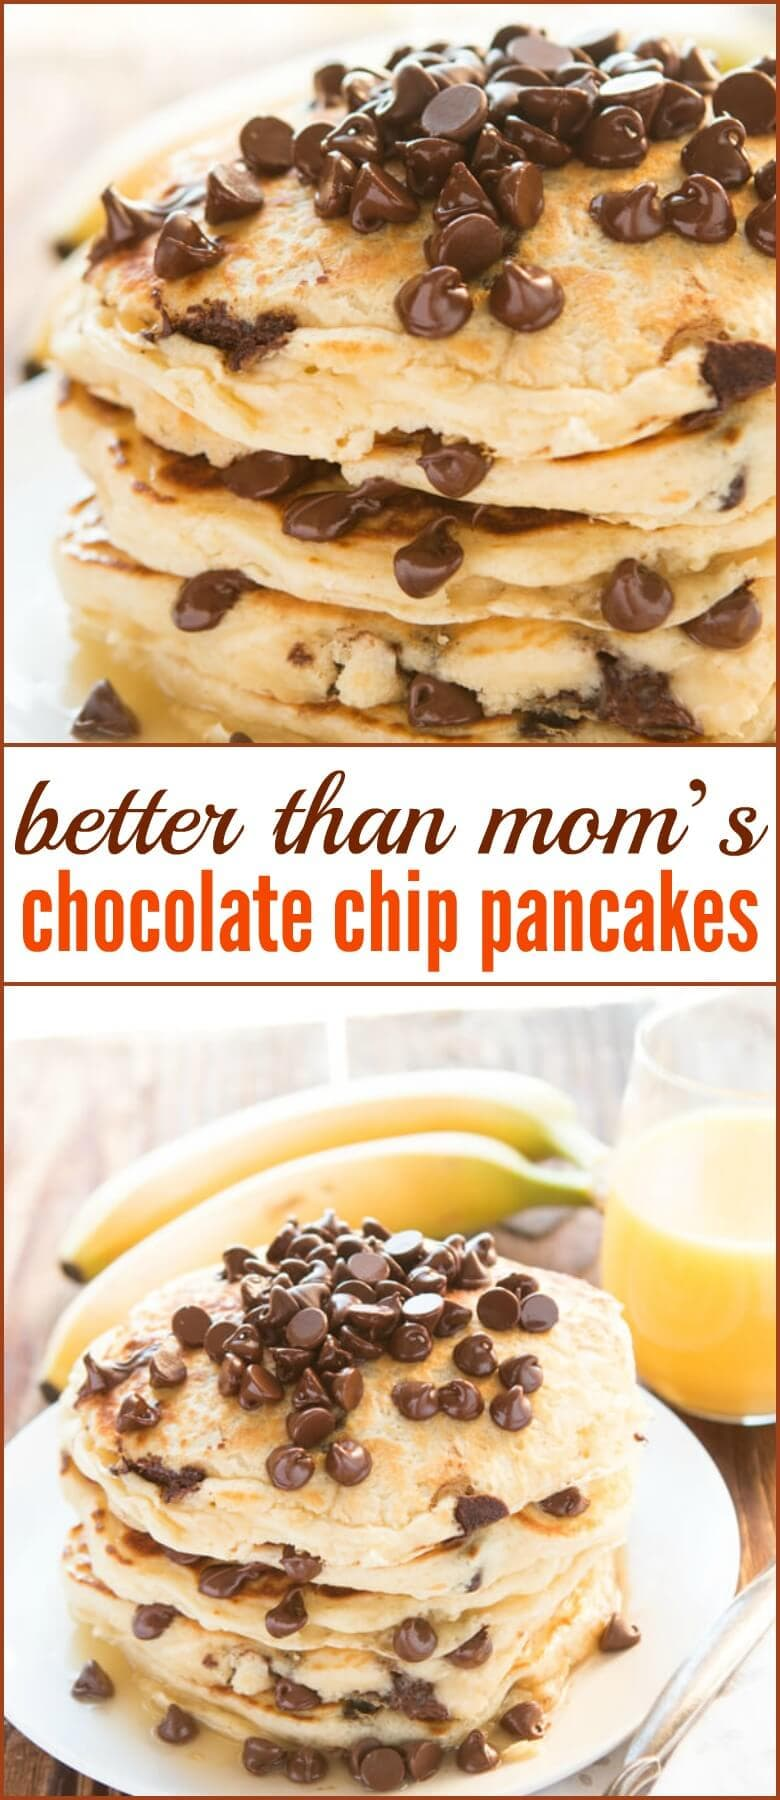 Better Than Mom's Chocolate Chip Pancakes